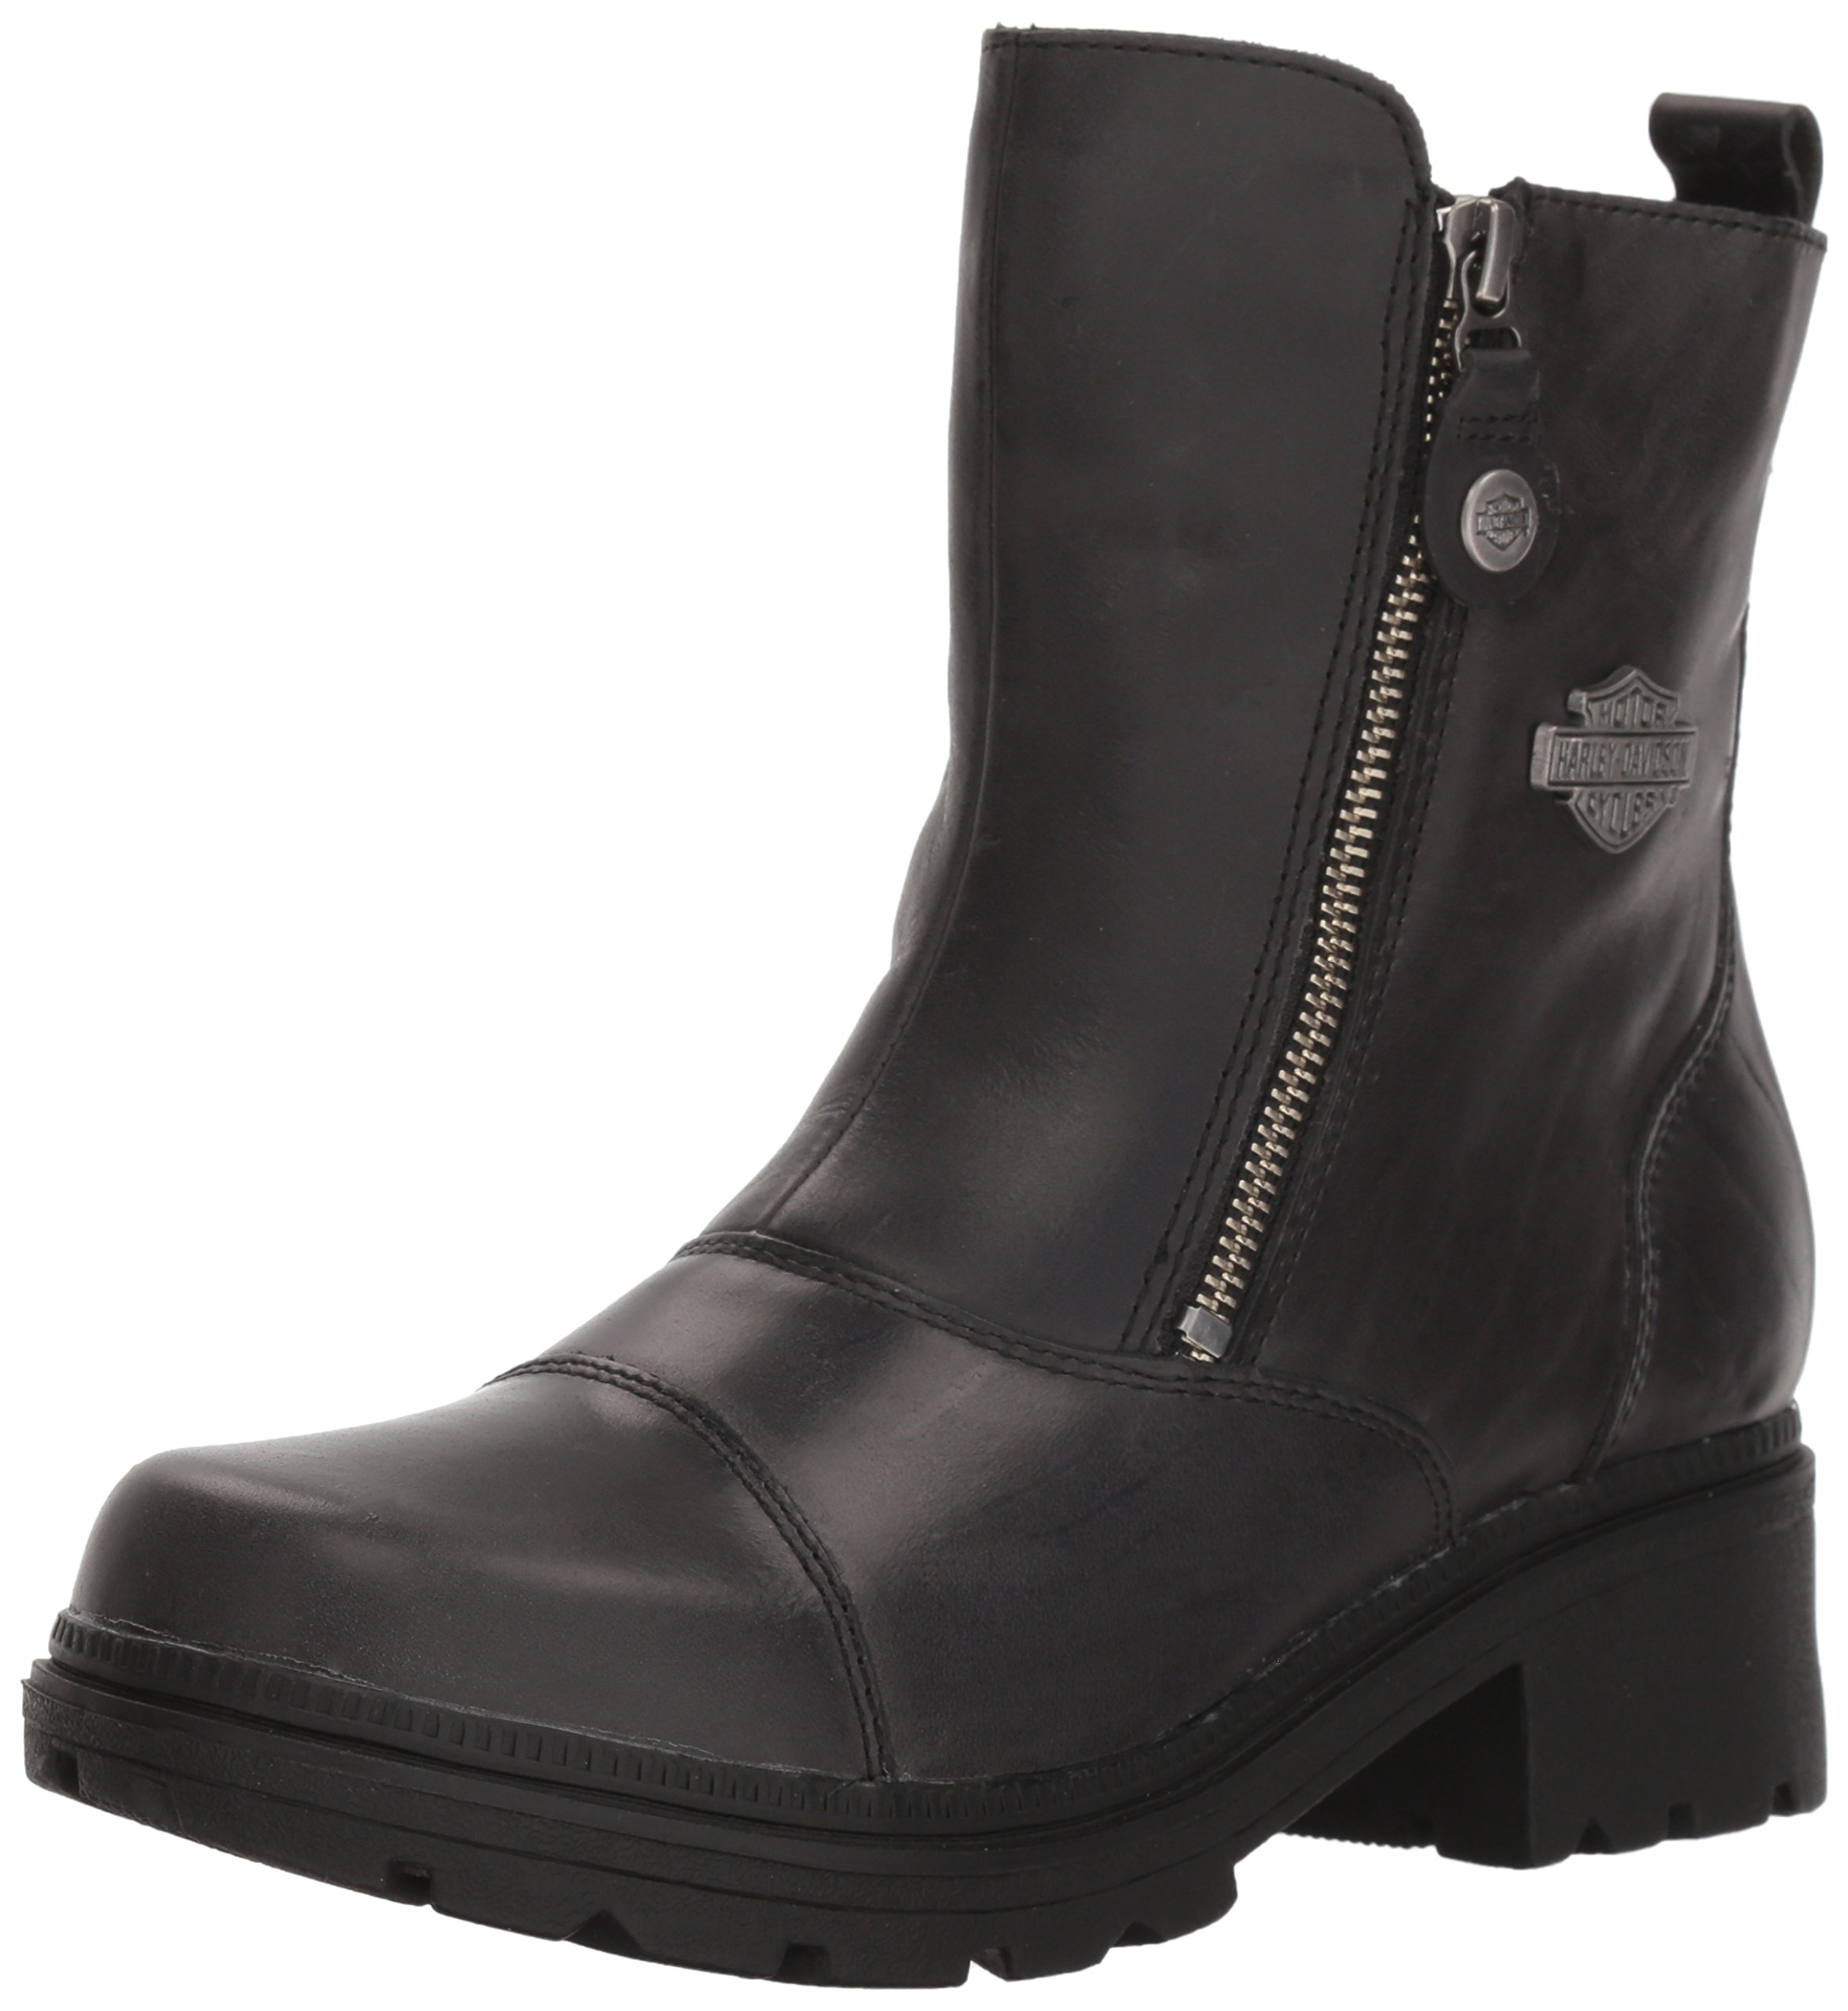 Harley-Davidson Women's Amherst Motorcycle Boot, Black, 6 Medium US by Harley-Davidson